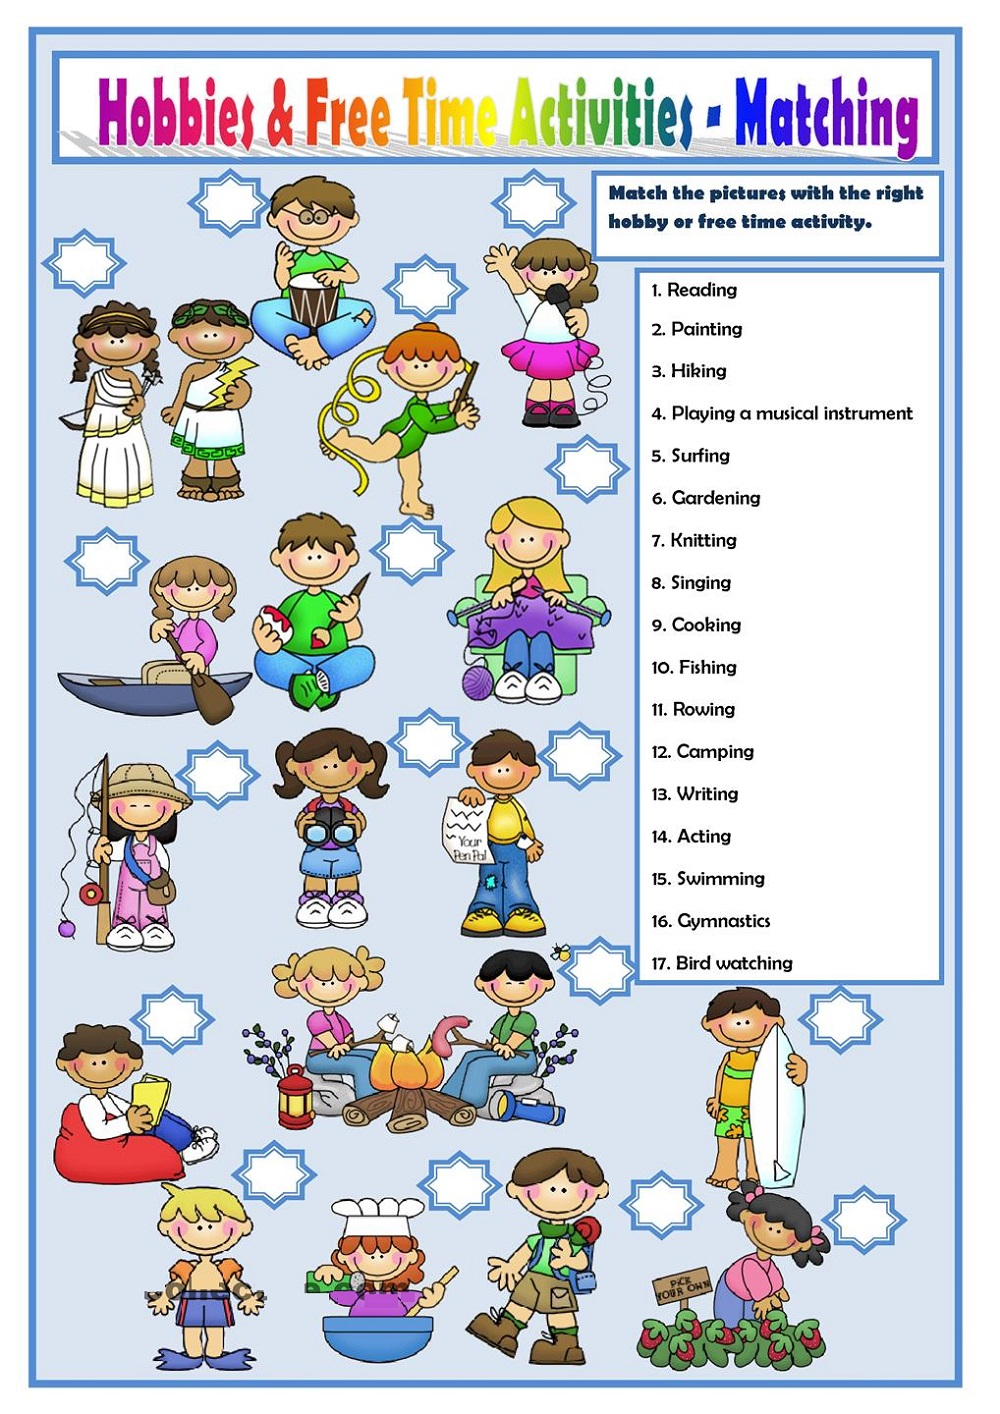 Hobby Worksheets Activity for Kids | 101 Printable